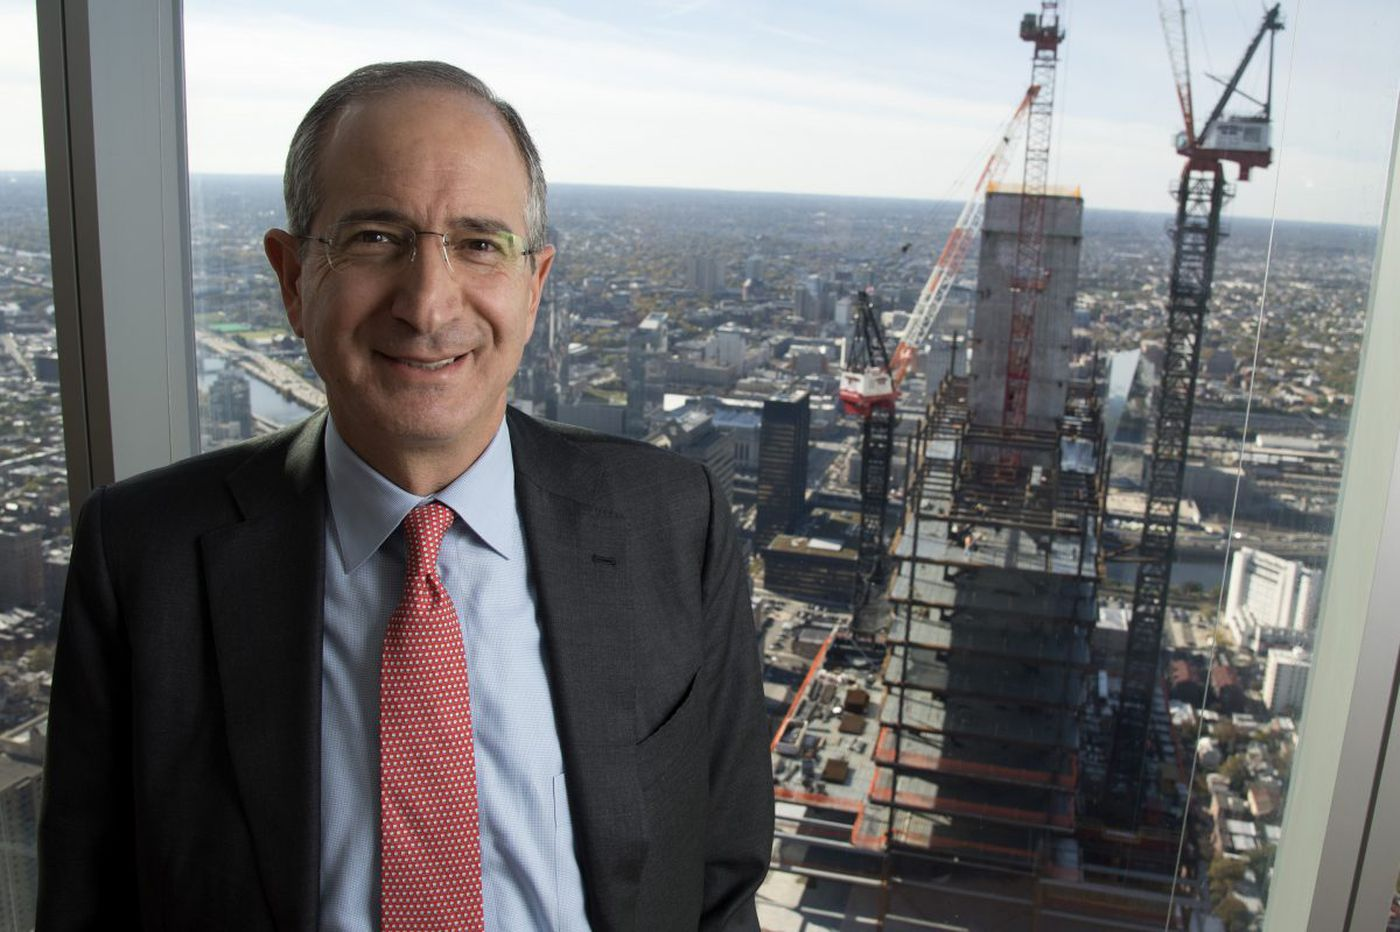 Comcast's 2nd virtual shareholder meeting gets poor reviews from activists